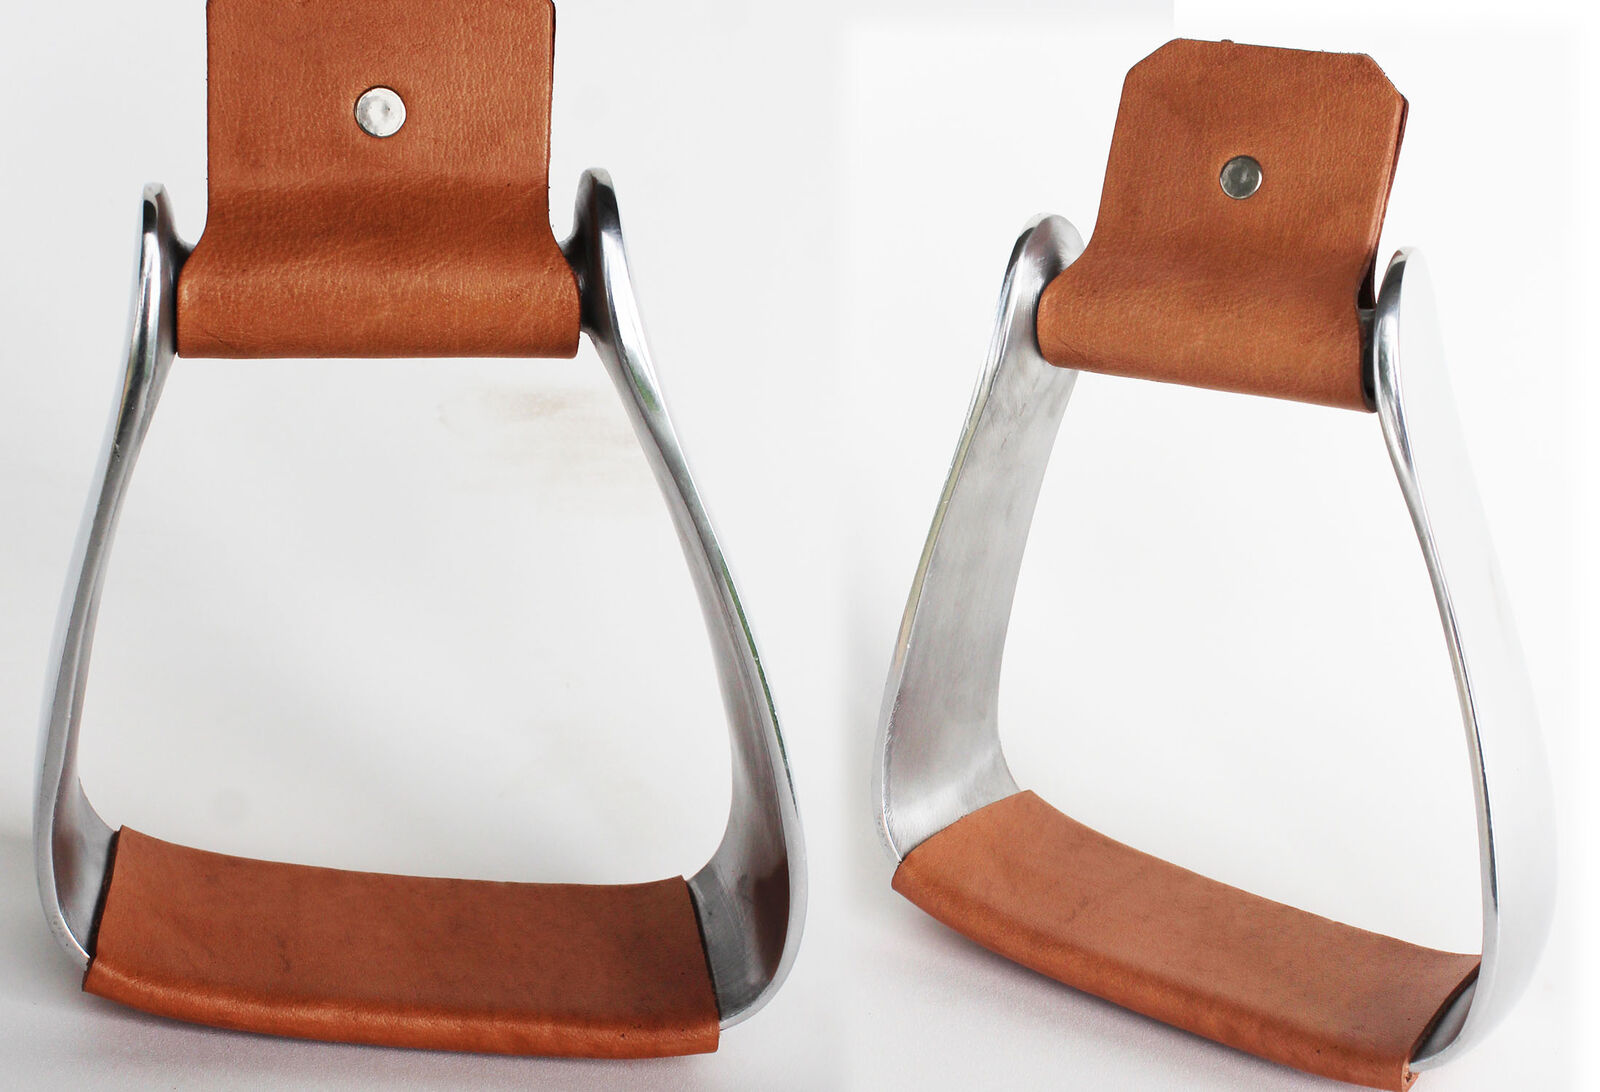 Horse  Saddle Angled Slanted Sloped Aluminum Stirrups Leather 5195  online retailers